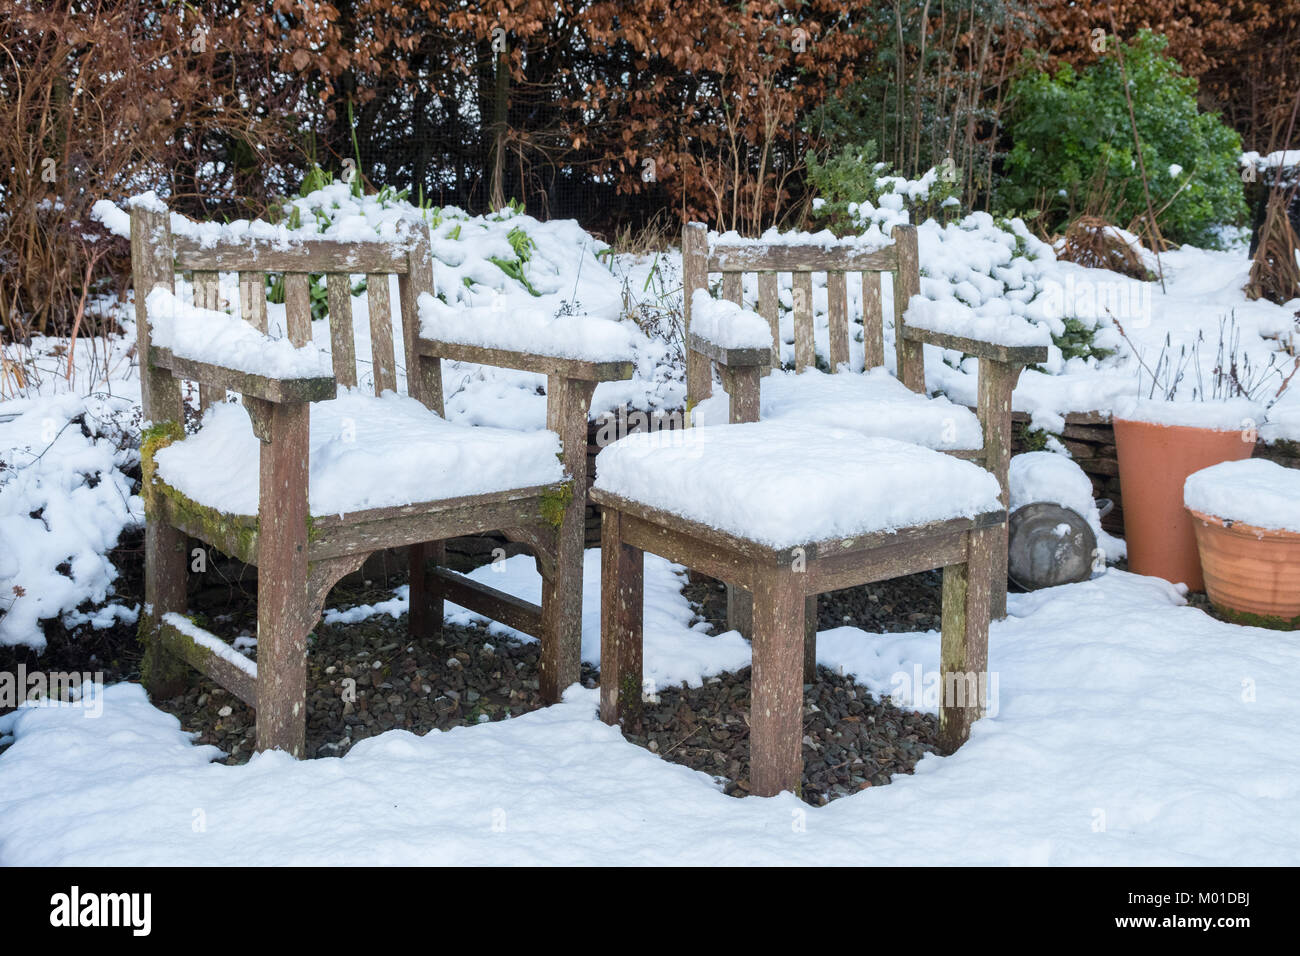 wooden garden furniture covered in snow - Stock Image